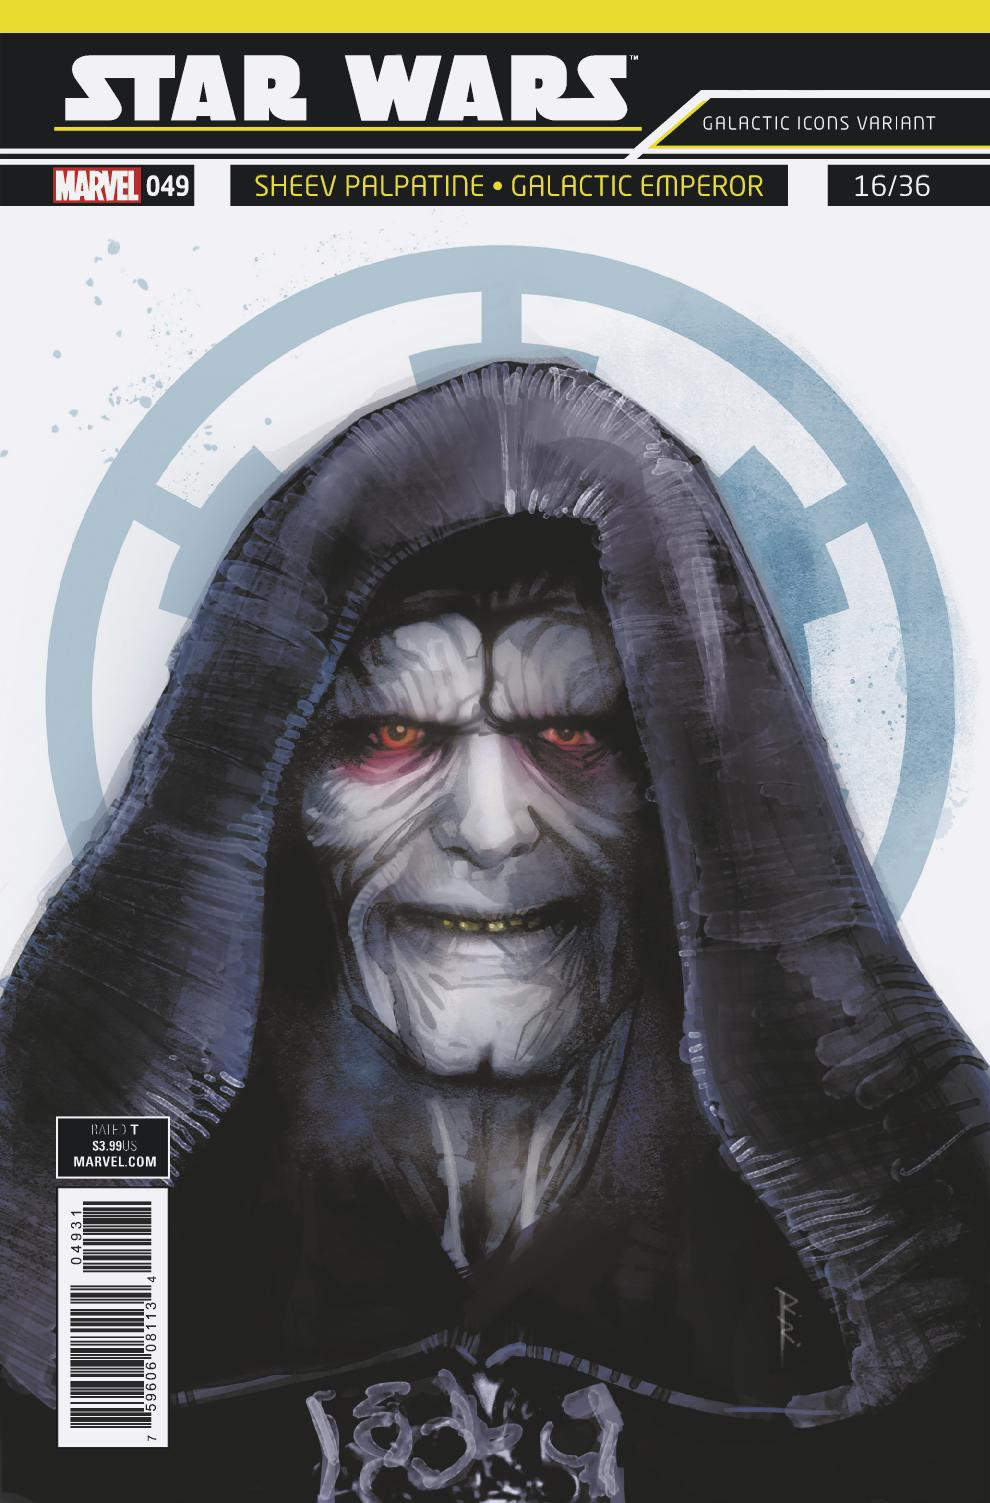 "Star Wars #49 (Rod Reis Galactic Icon ""Sheev Palpatine"" Variant Cover) (06.06.2018)"